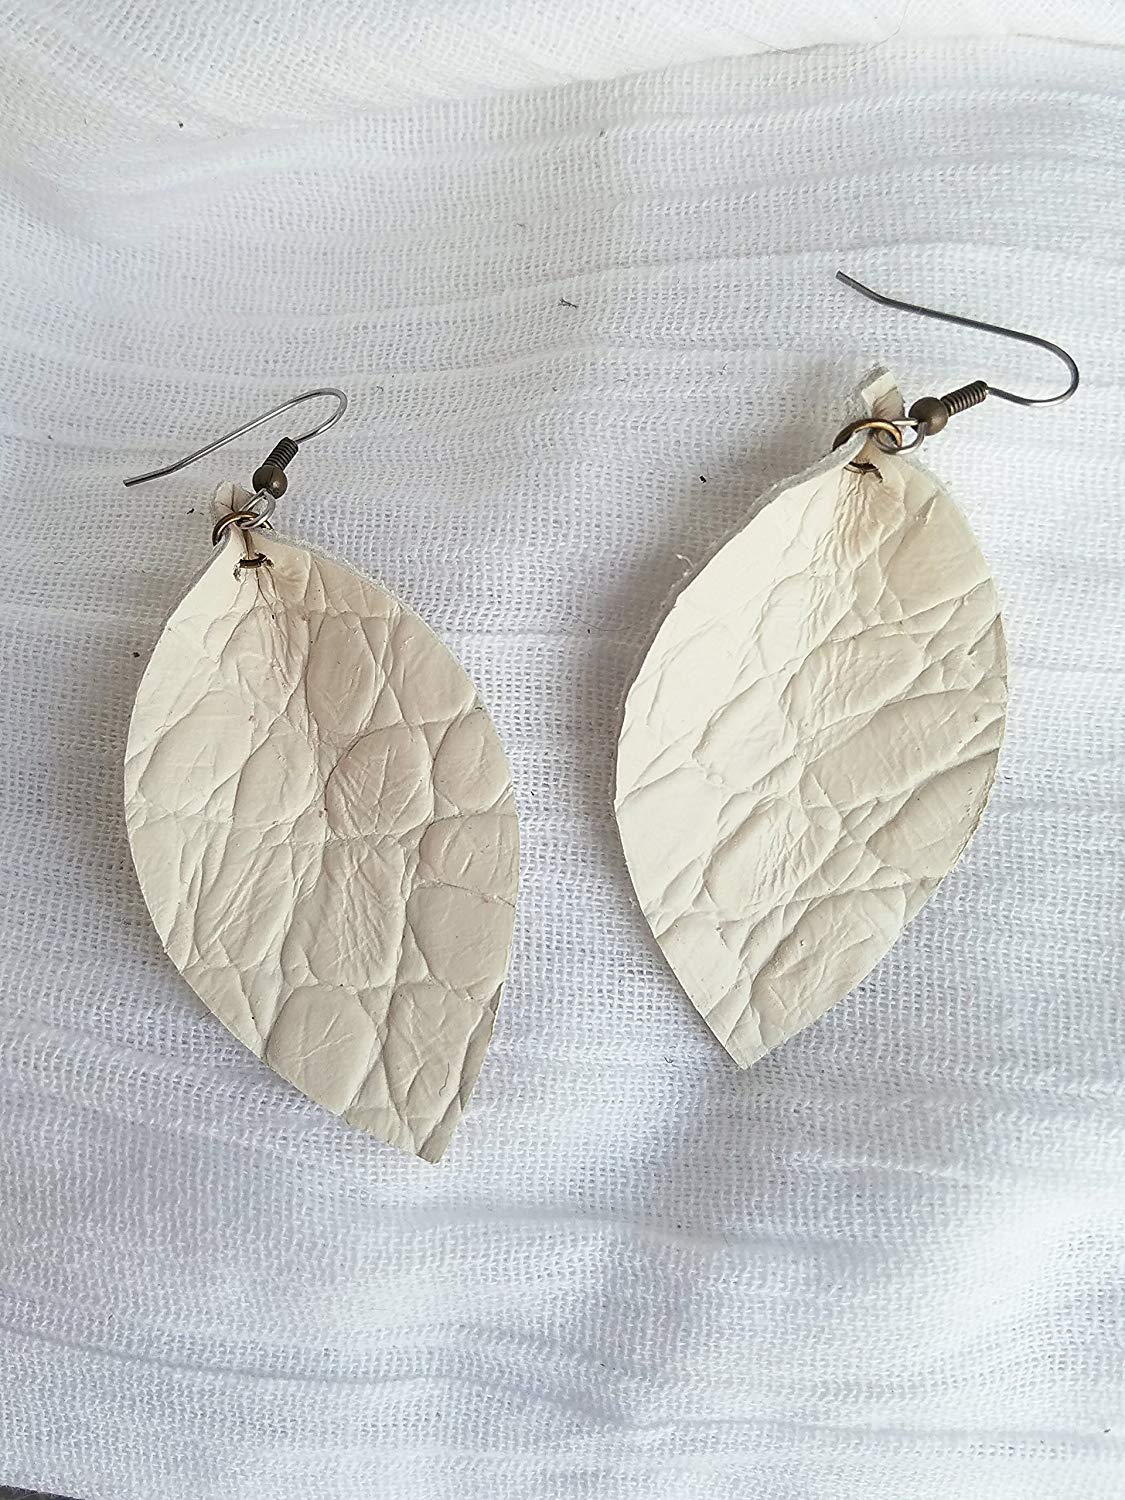 """Antique White/Textured/Leather Earrings/FREE SHIPPING/Joanna Gaines/Zia/Statement/Medium/Large/3.5""""x1.25""""/Hypoallergenic"""